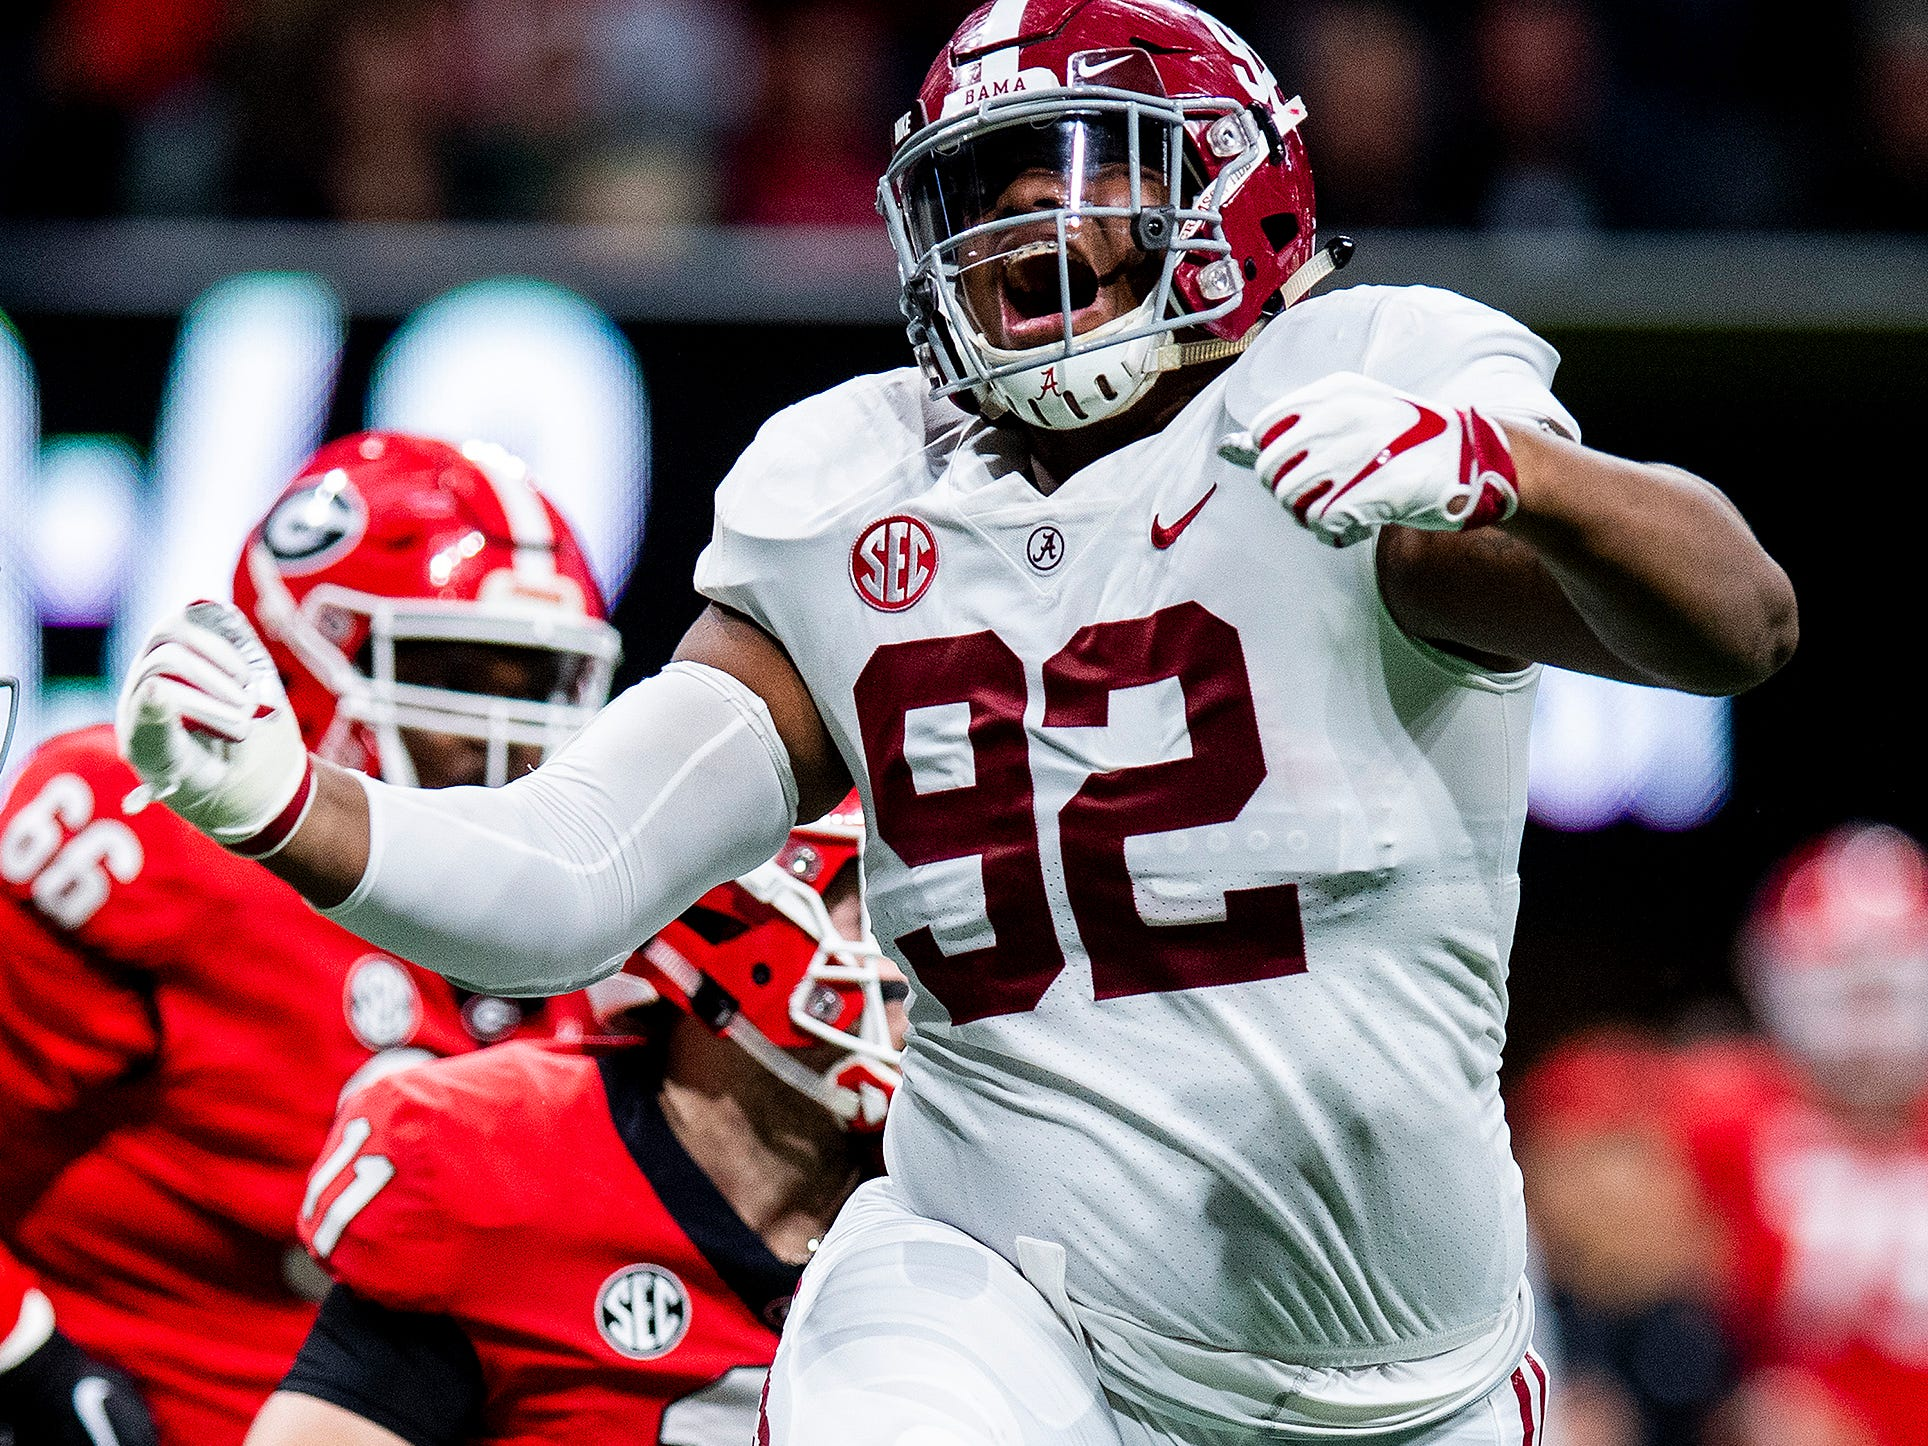 Alabama defensive lineman Quinnen Williams (92) celebrates a sack against Georgia during first half action of the SEC Championship Game at Mercedes Benz Stadium in Atlanta, Ga., on Saturday December 1, 2018.